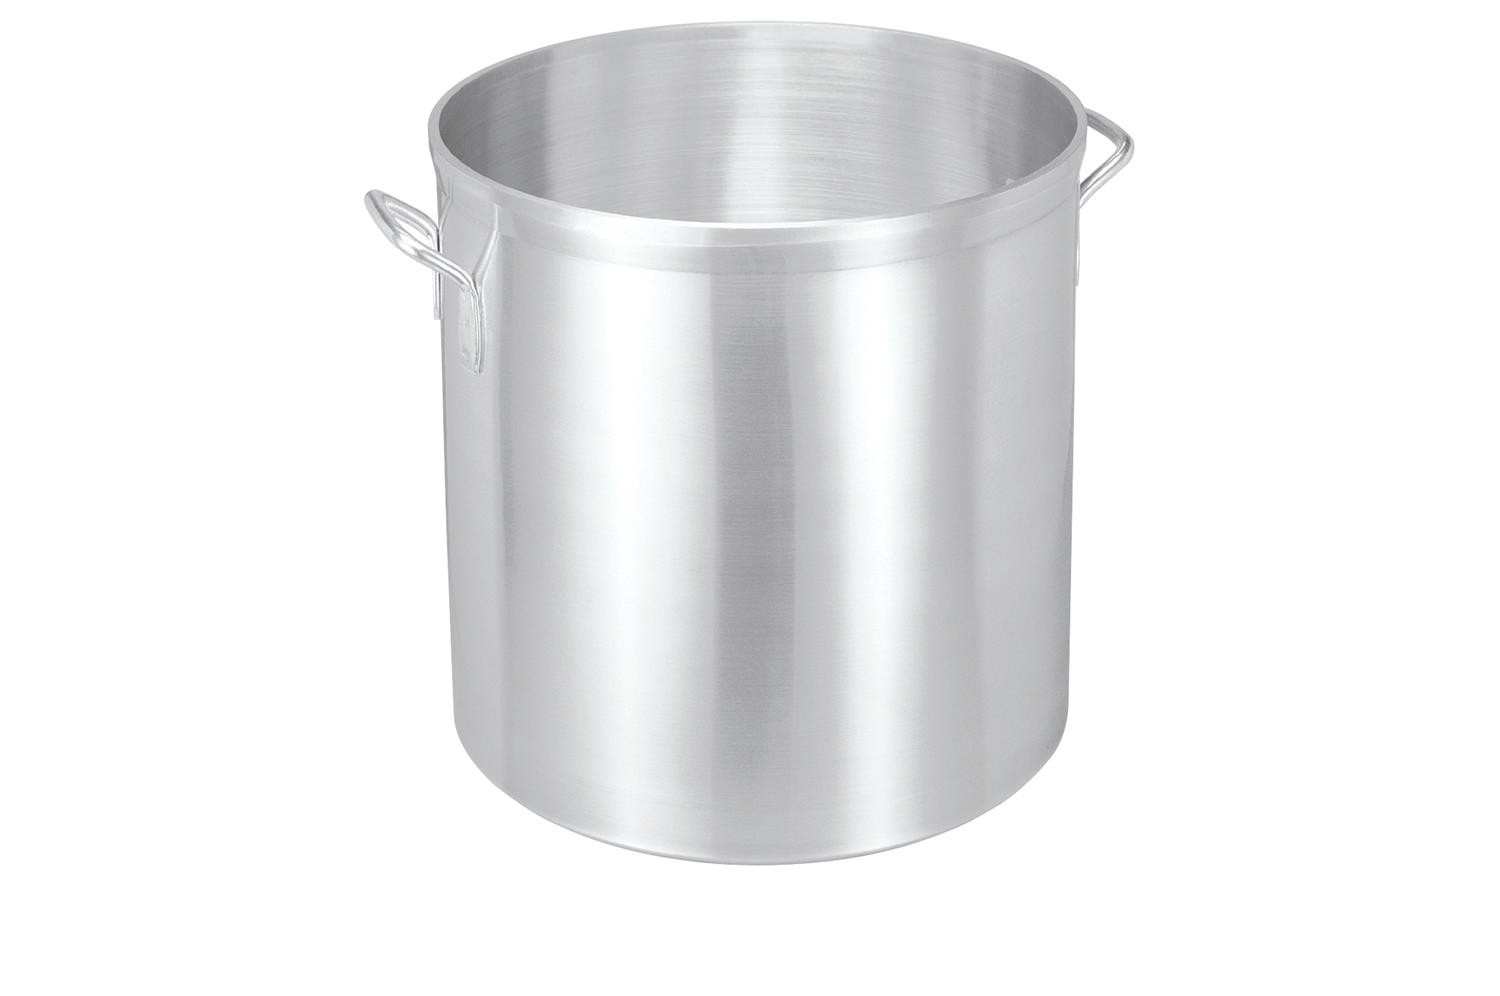 Vollrath 68616 Heavy-Duty Aluminum 15 Qt Stock Pot